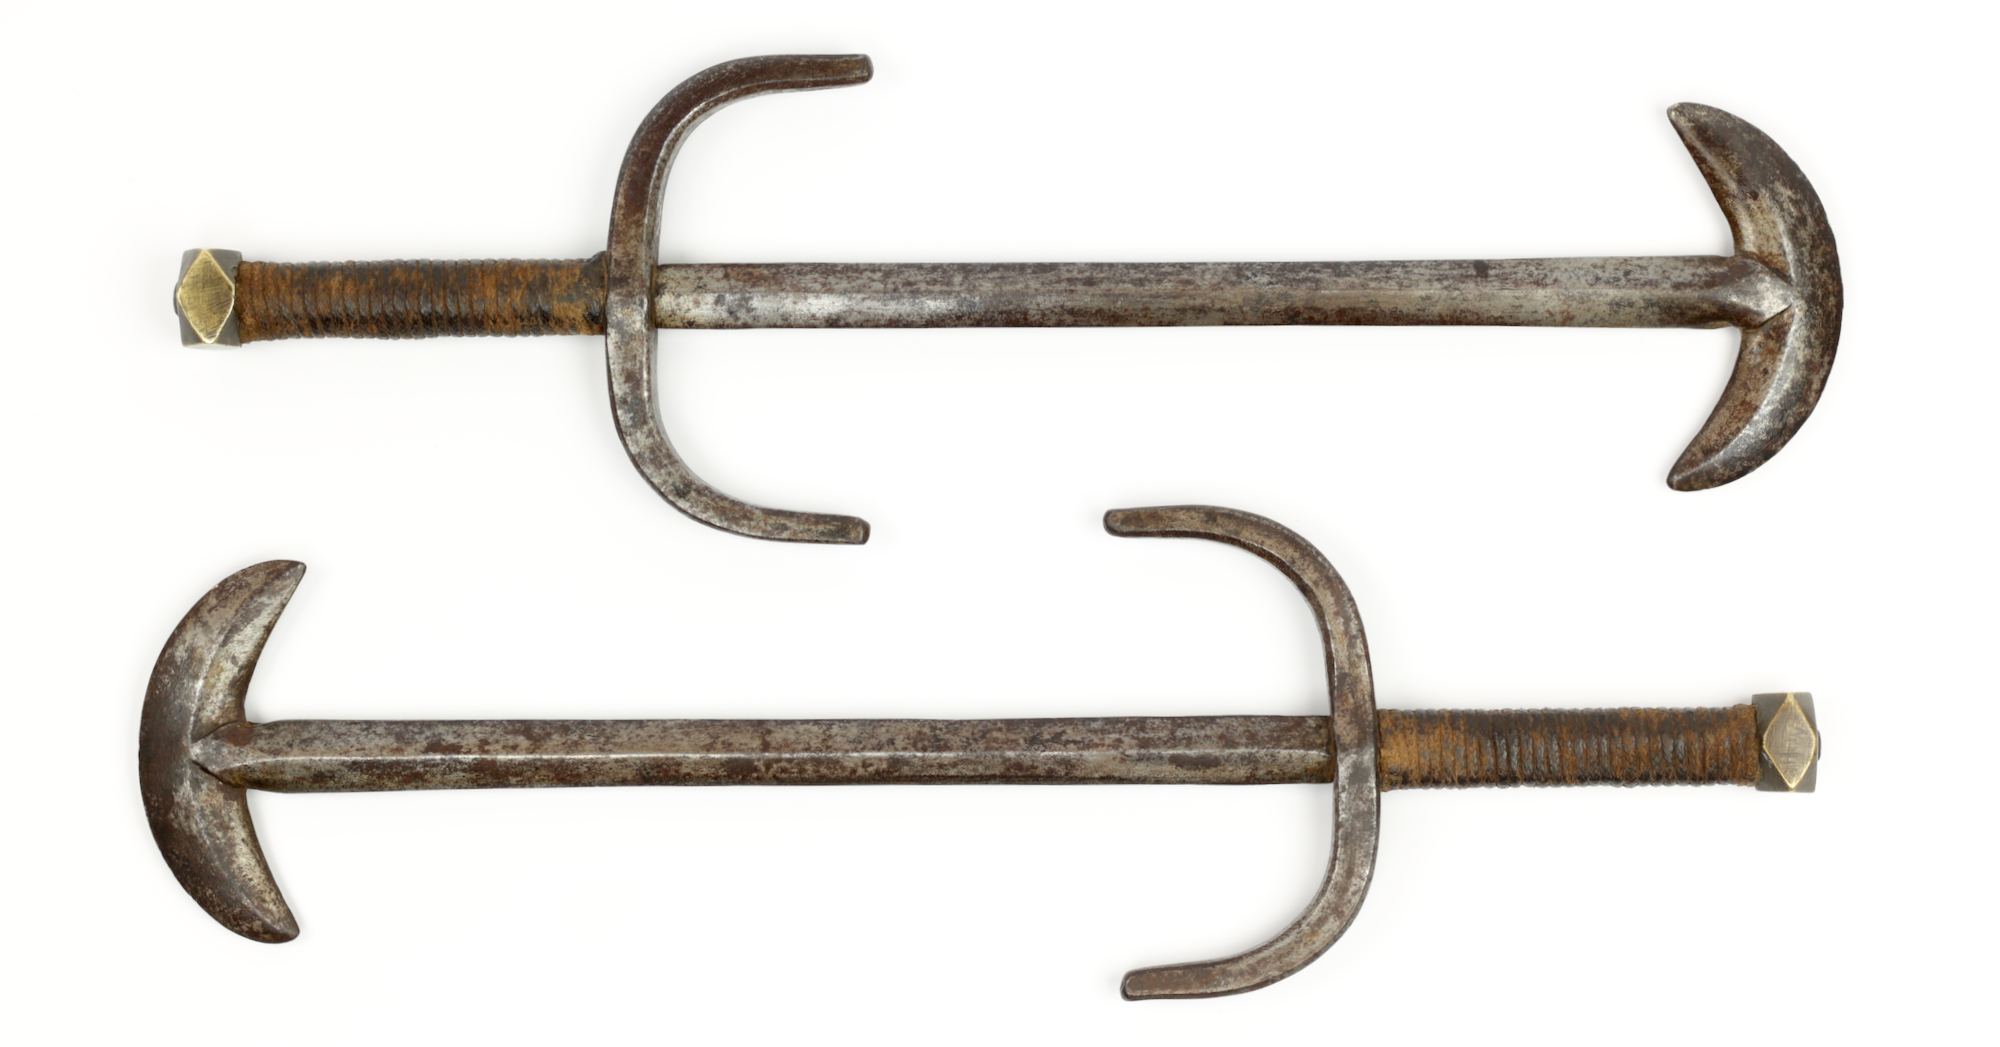 Chinese crescent moon weapons